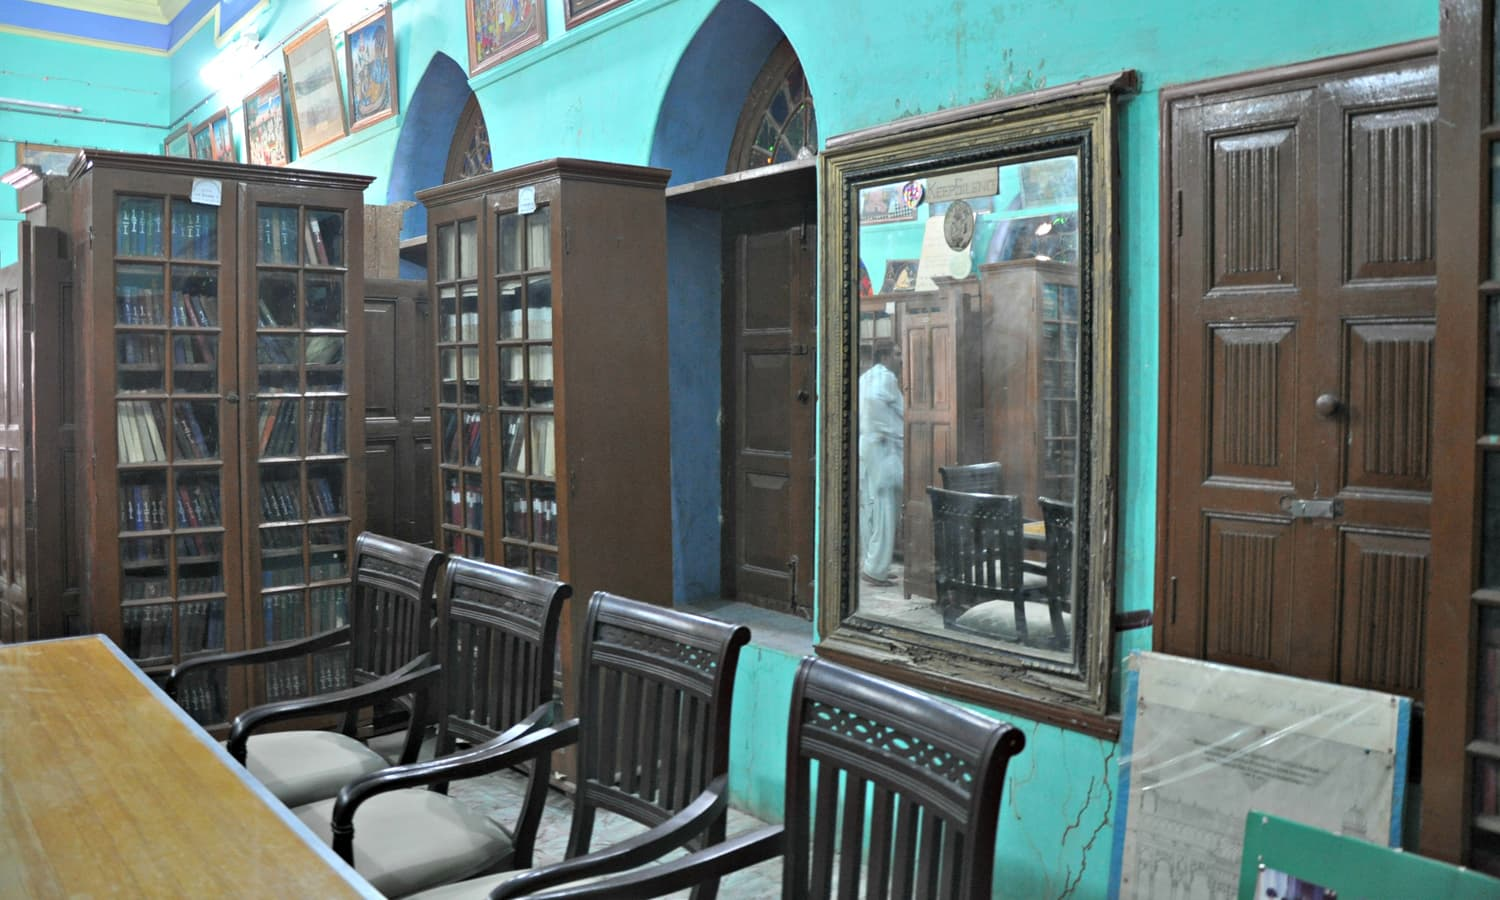 Sadho Belo - The library from inside